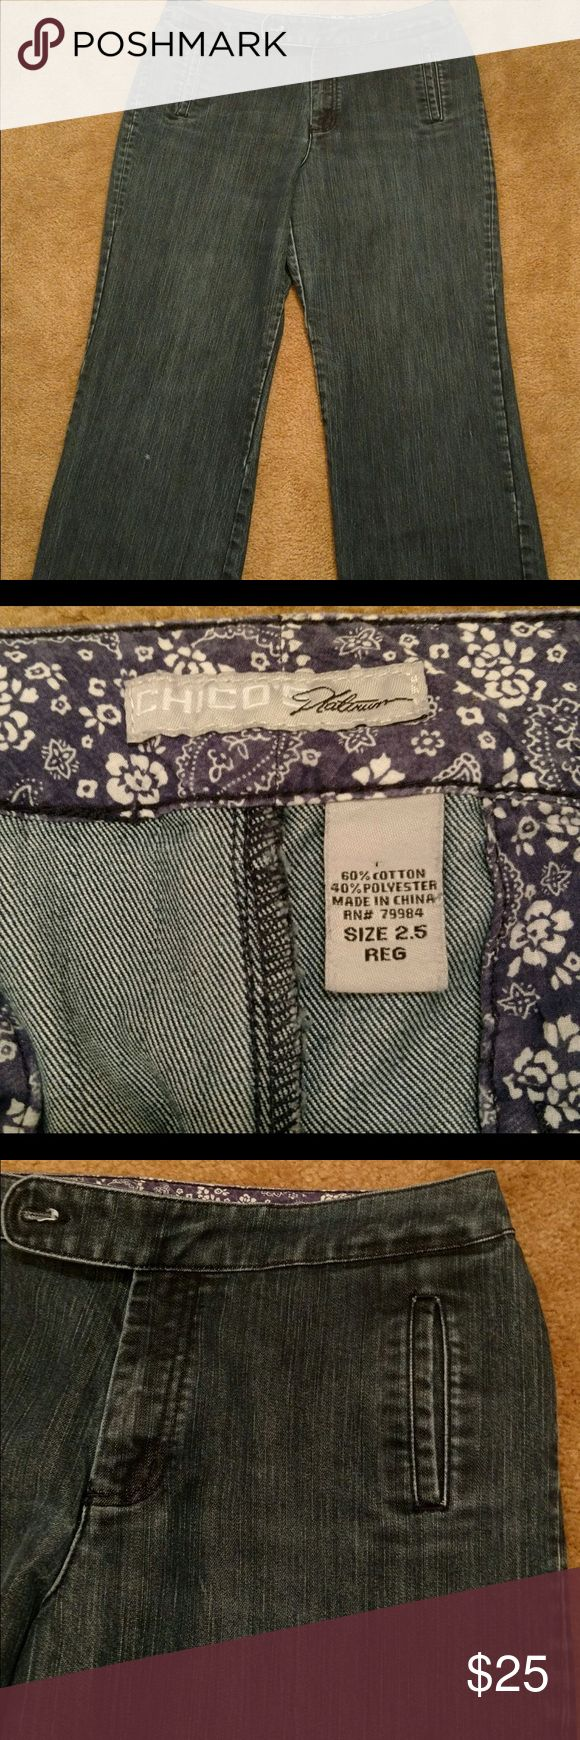 Chico's Platinum Women's Plus Size Jeans Size 2.5 Chico's Size 2.5, very good condition. Make offer! Chico's Jeans Flare & Wide Leg